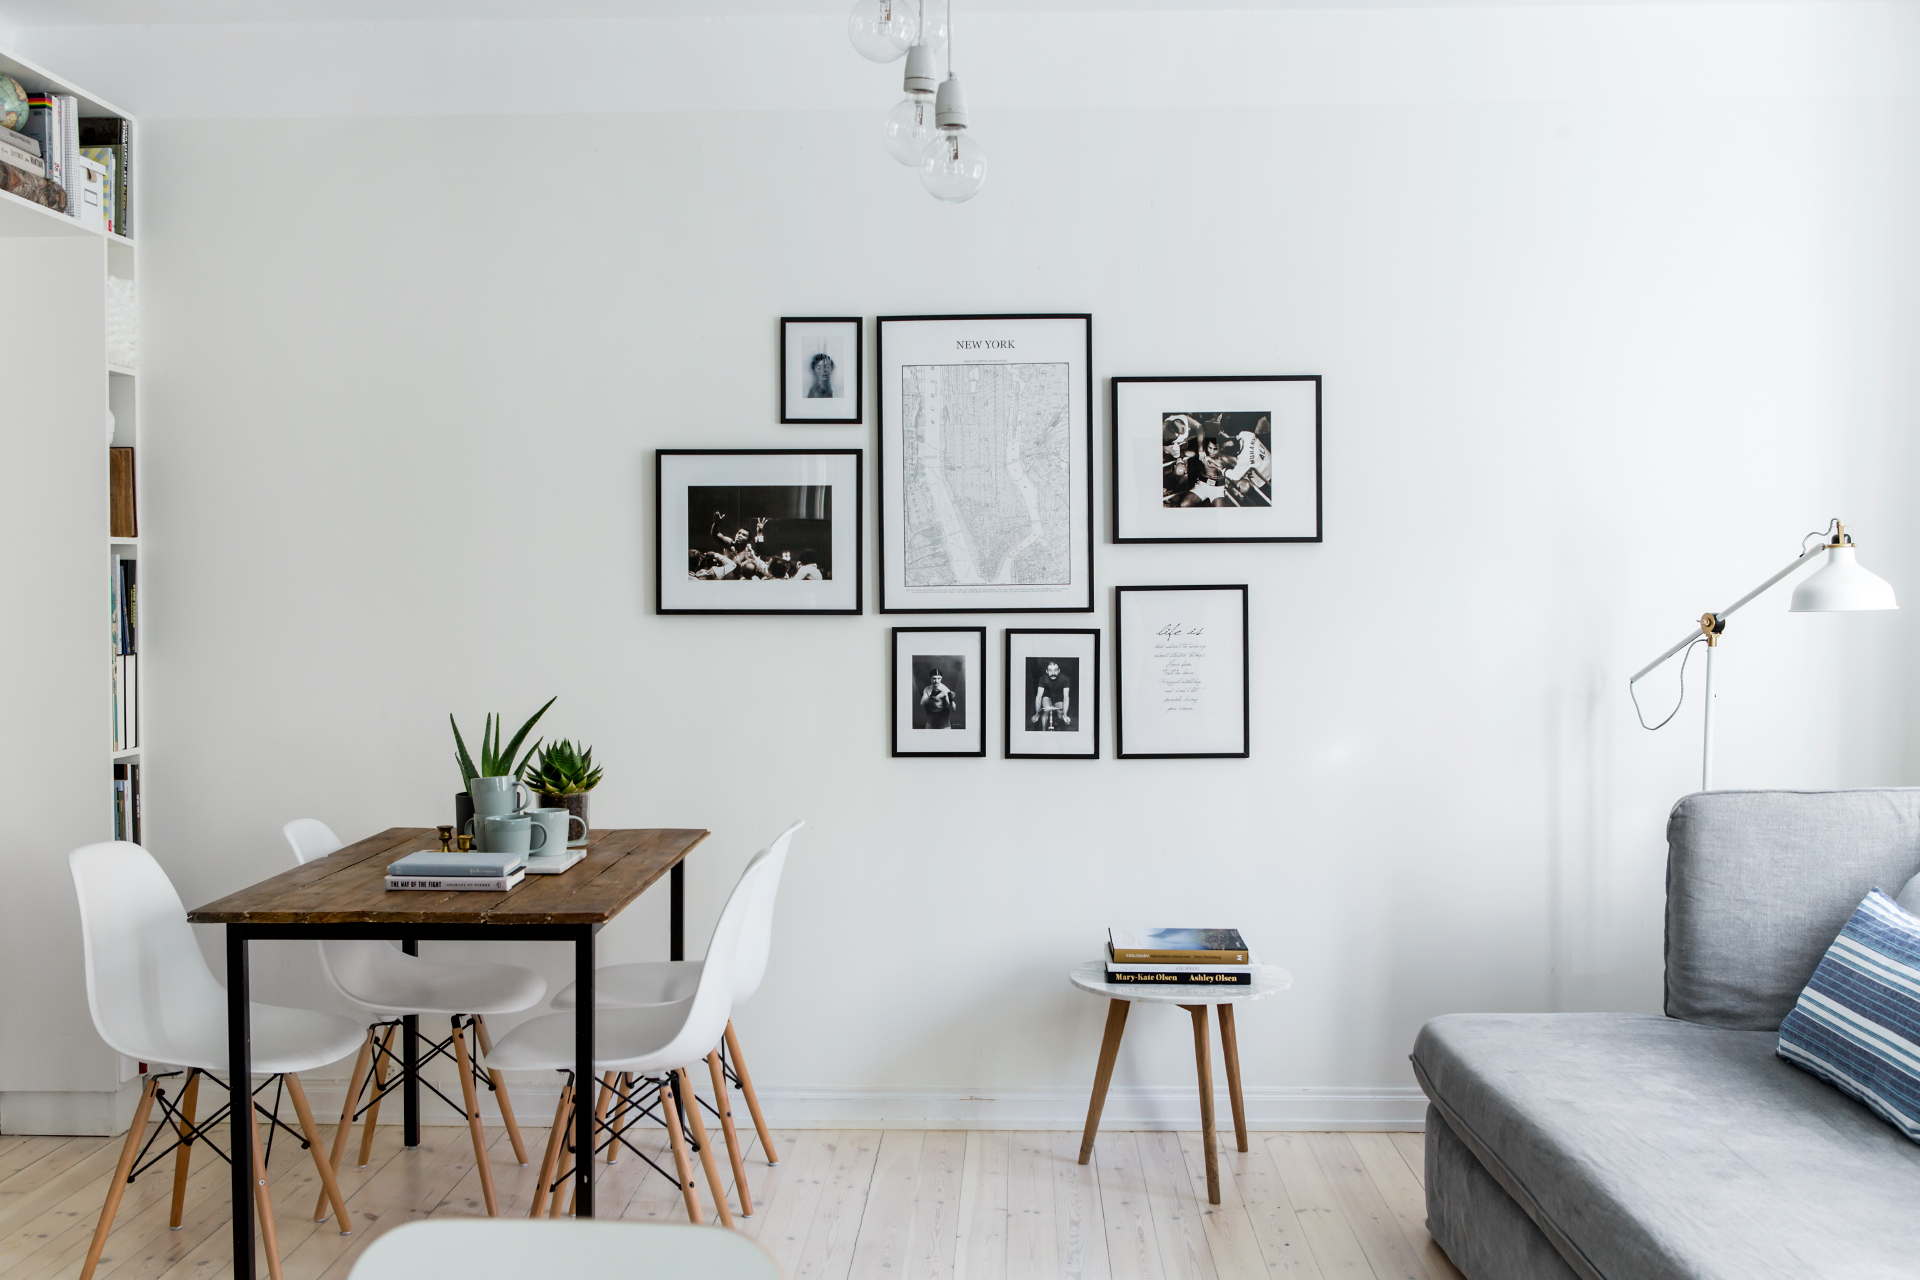 8 design lessons you can learn from scandinavian interiors for Interior decoration hsn code gst